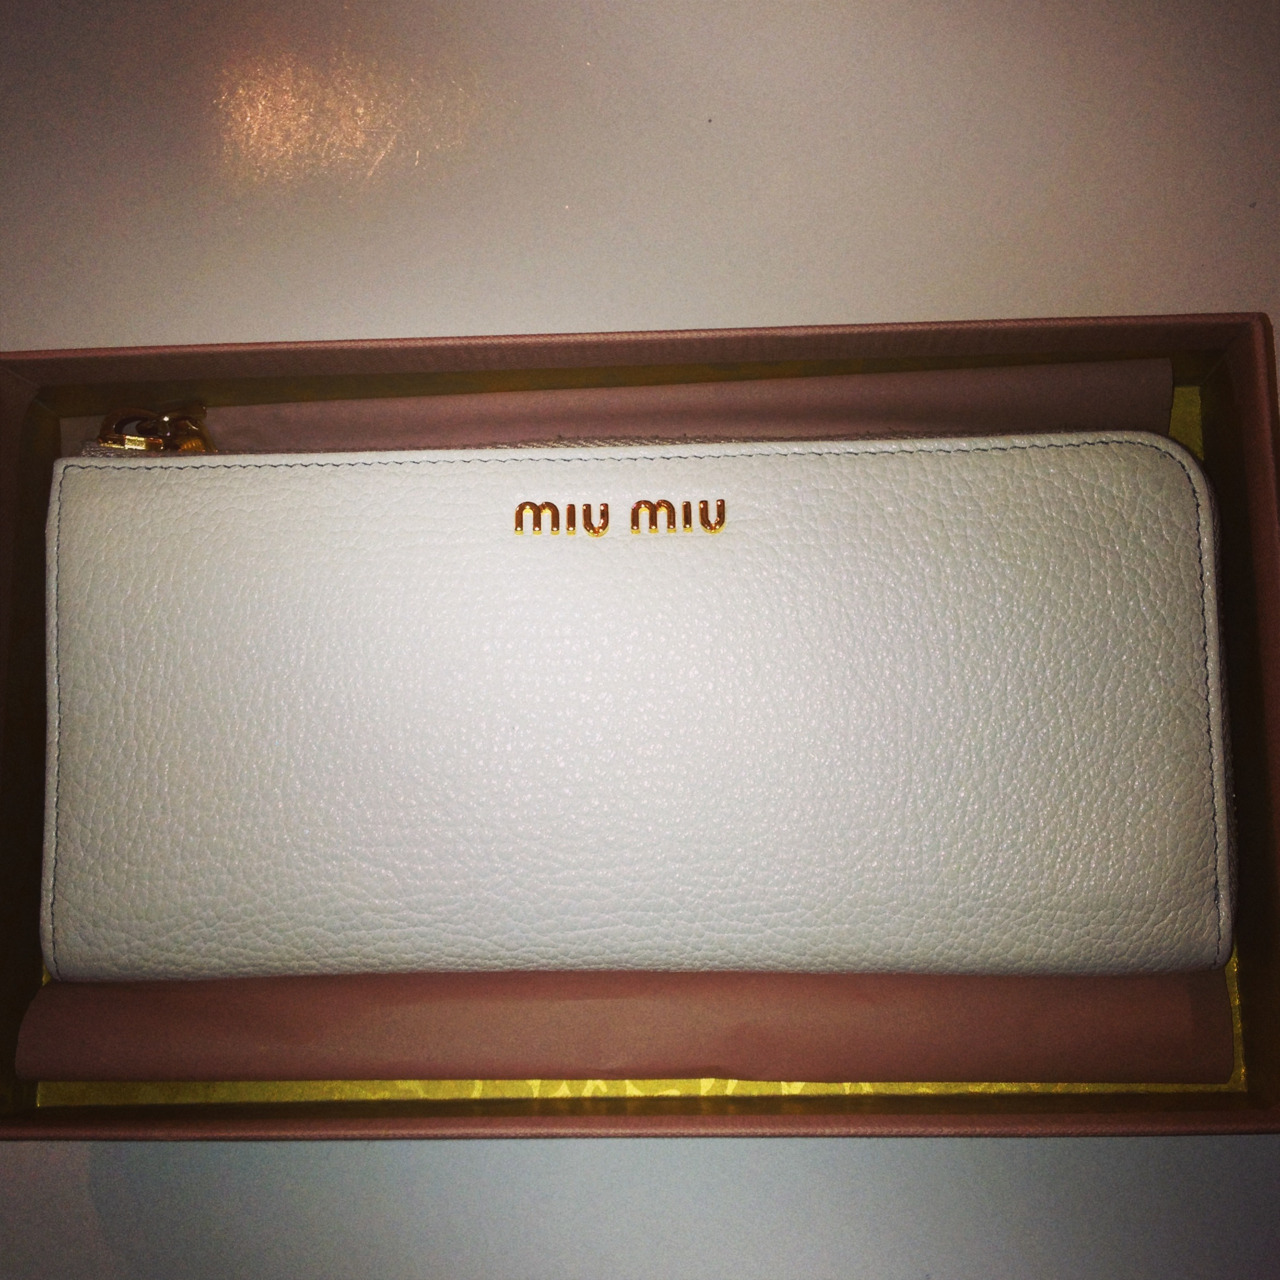 I don't usually post things I buy on here but LOOK AT MY BEAUTIFUL NEW MIU MIU   *kelly clarkson's a moment like this plays softly in the background*